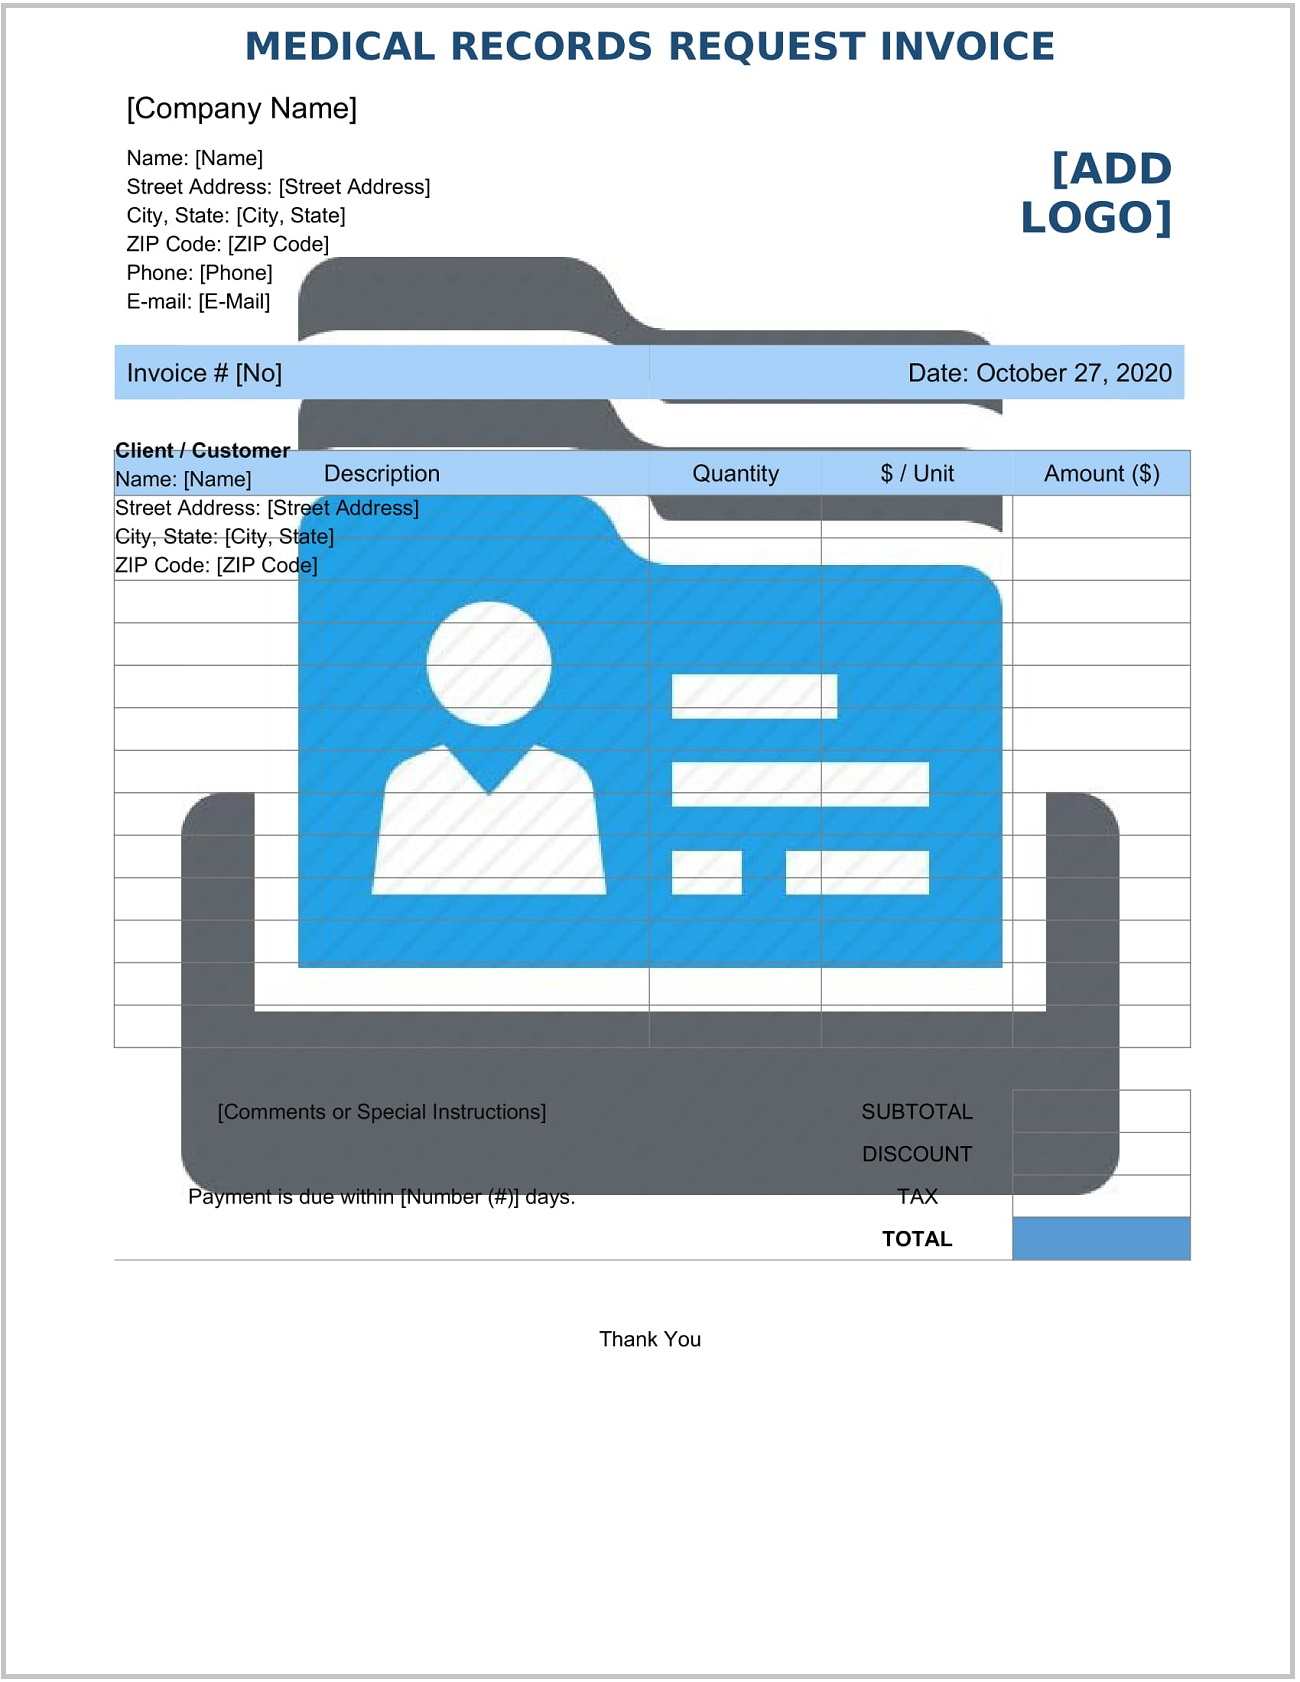 Medical Records Request Invoice Form Template Word